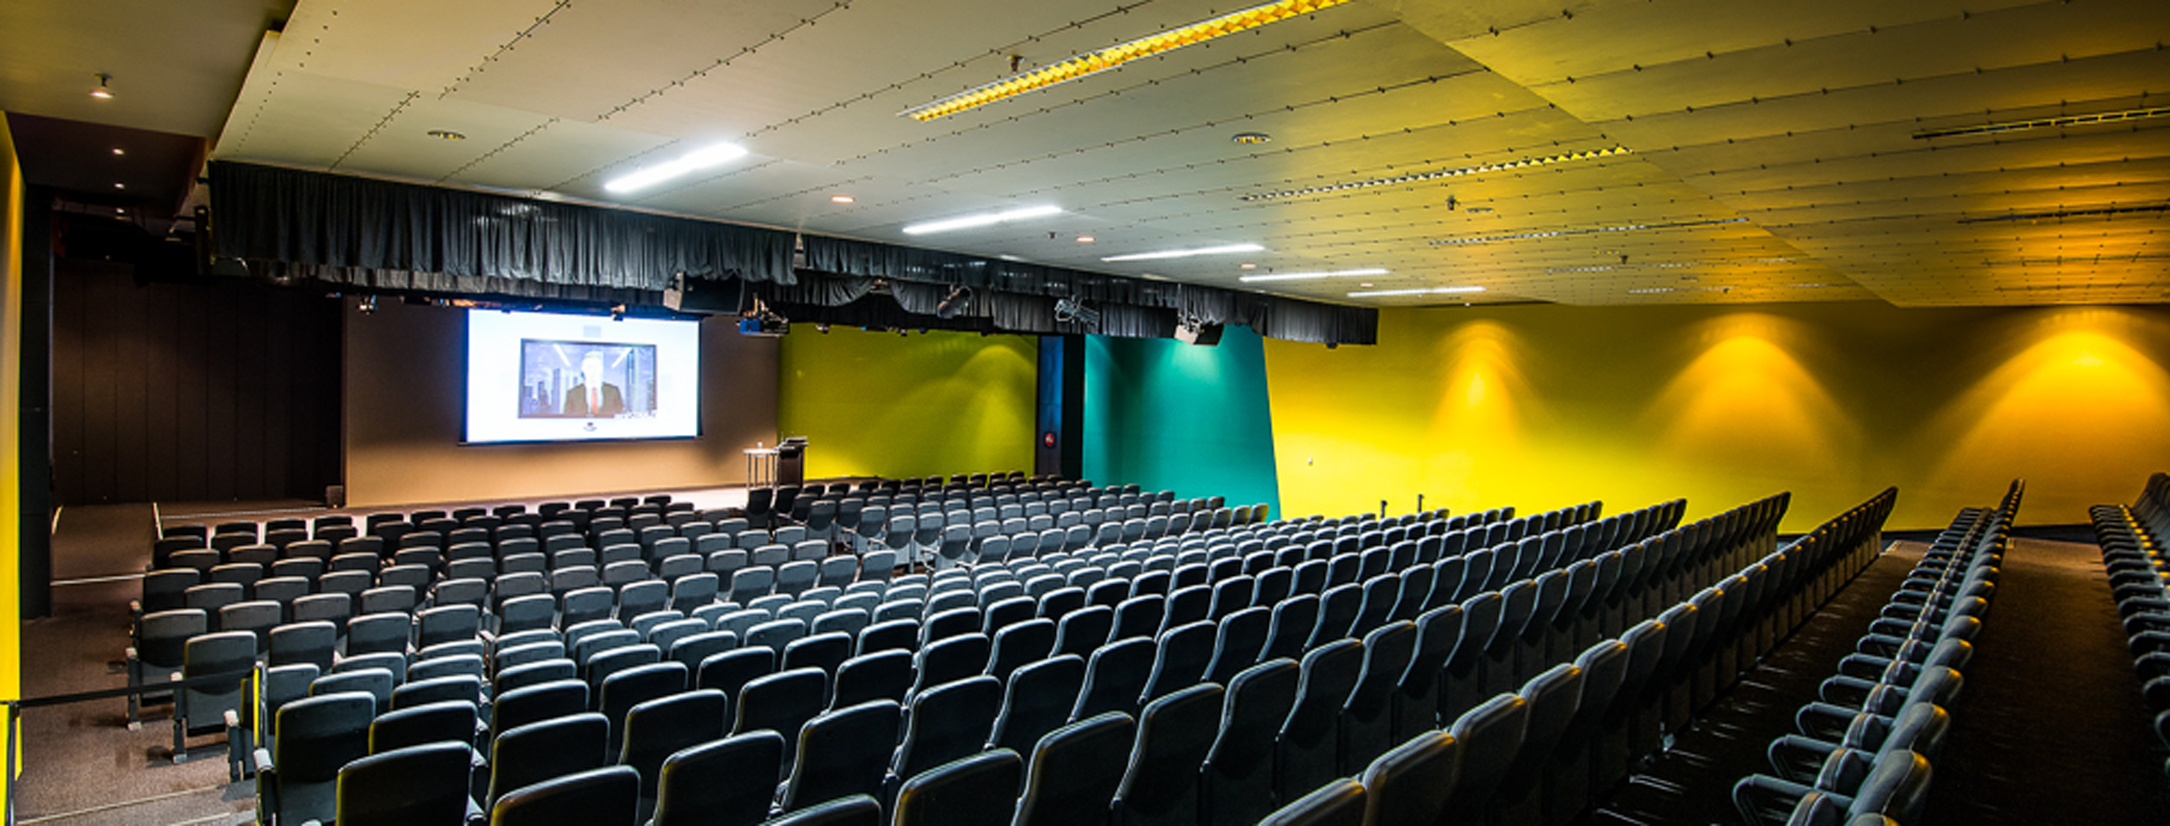 Clarendon Auditorium